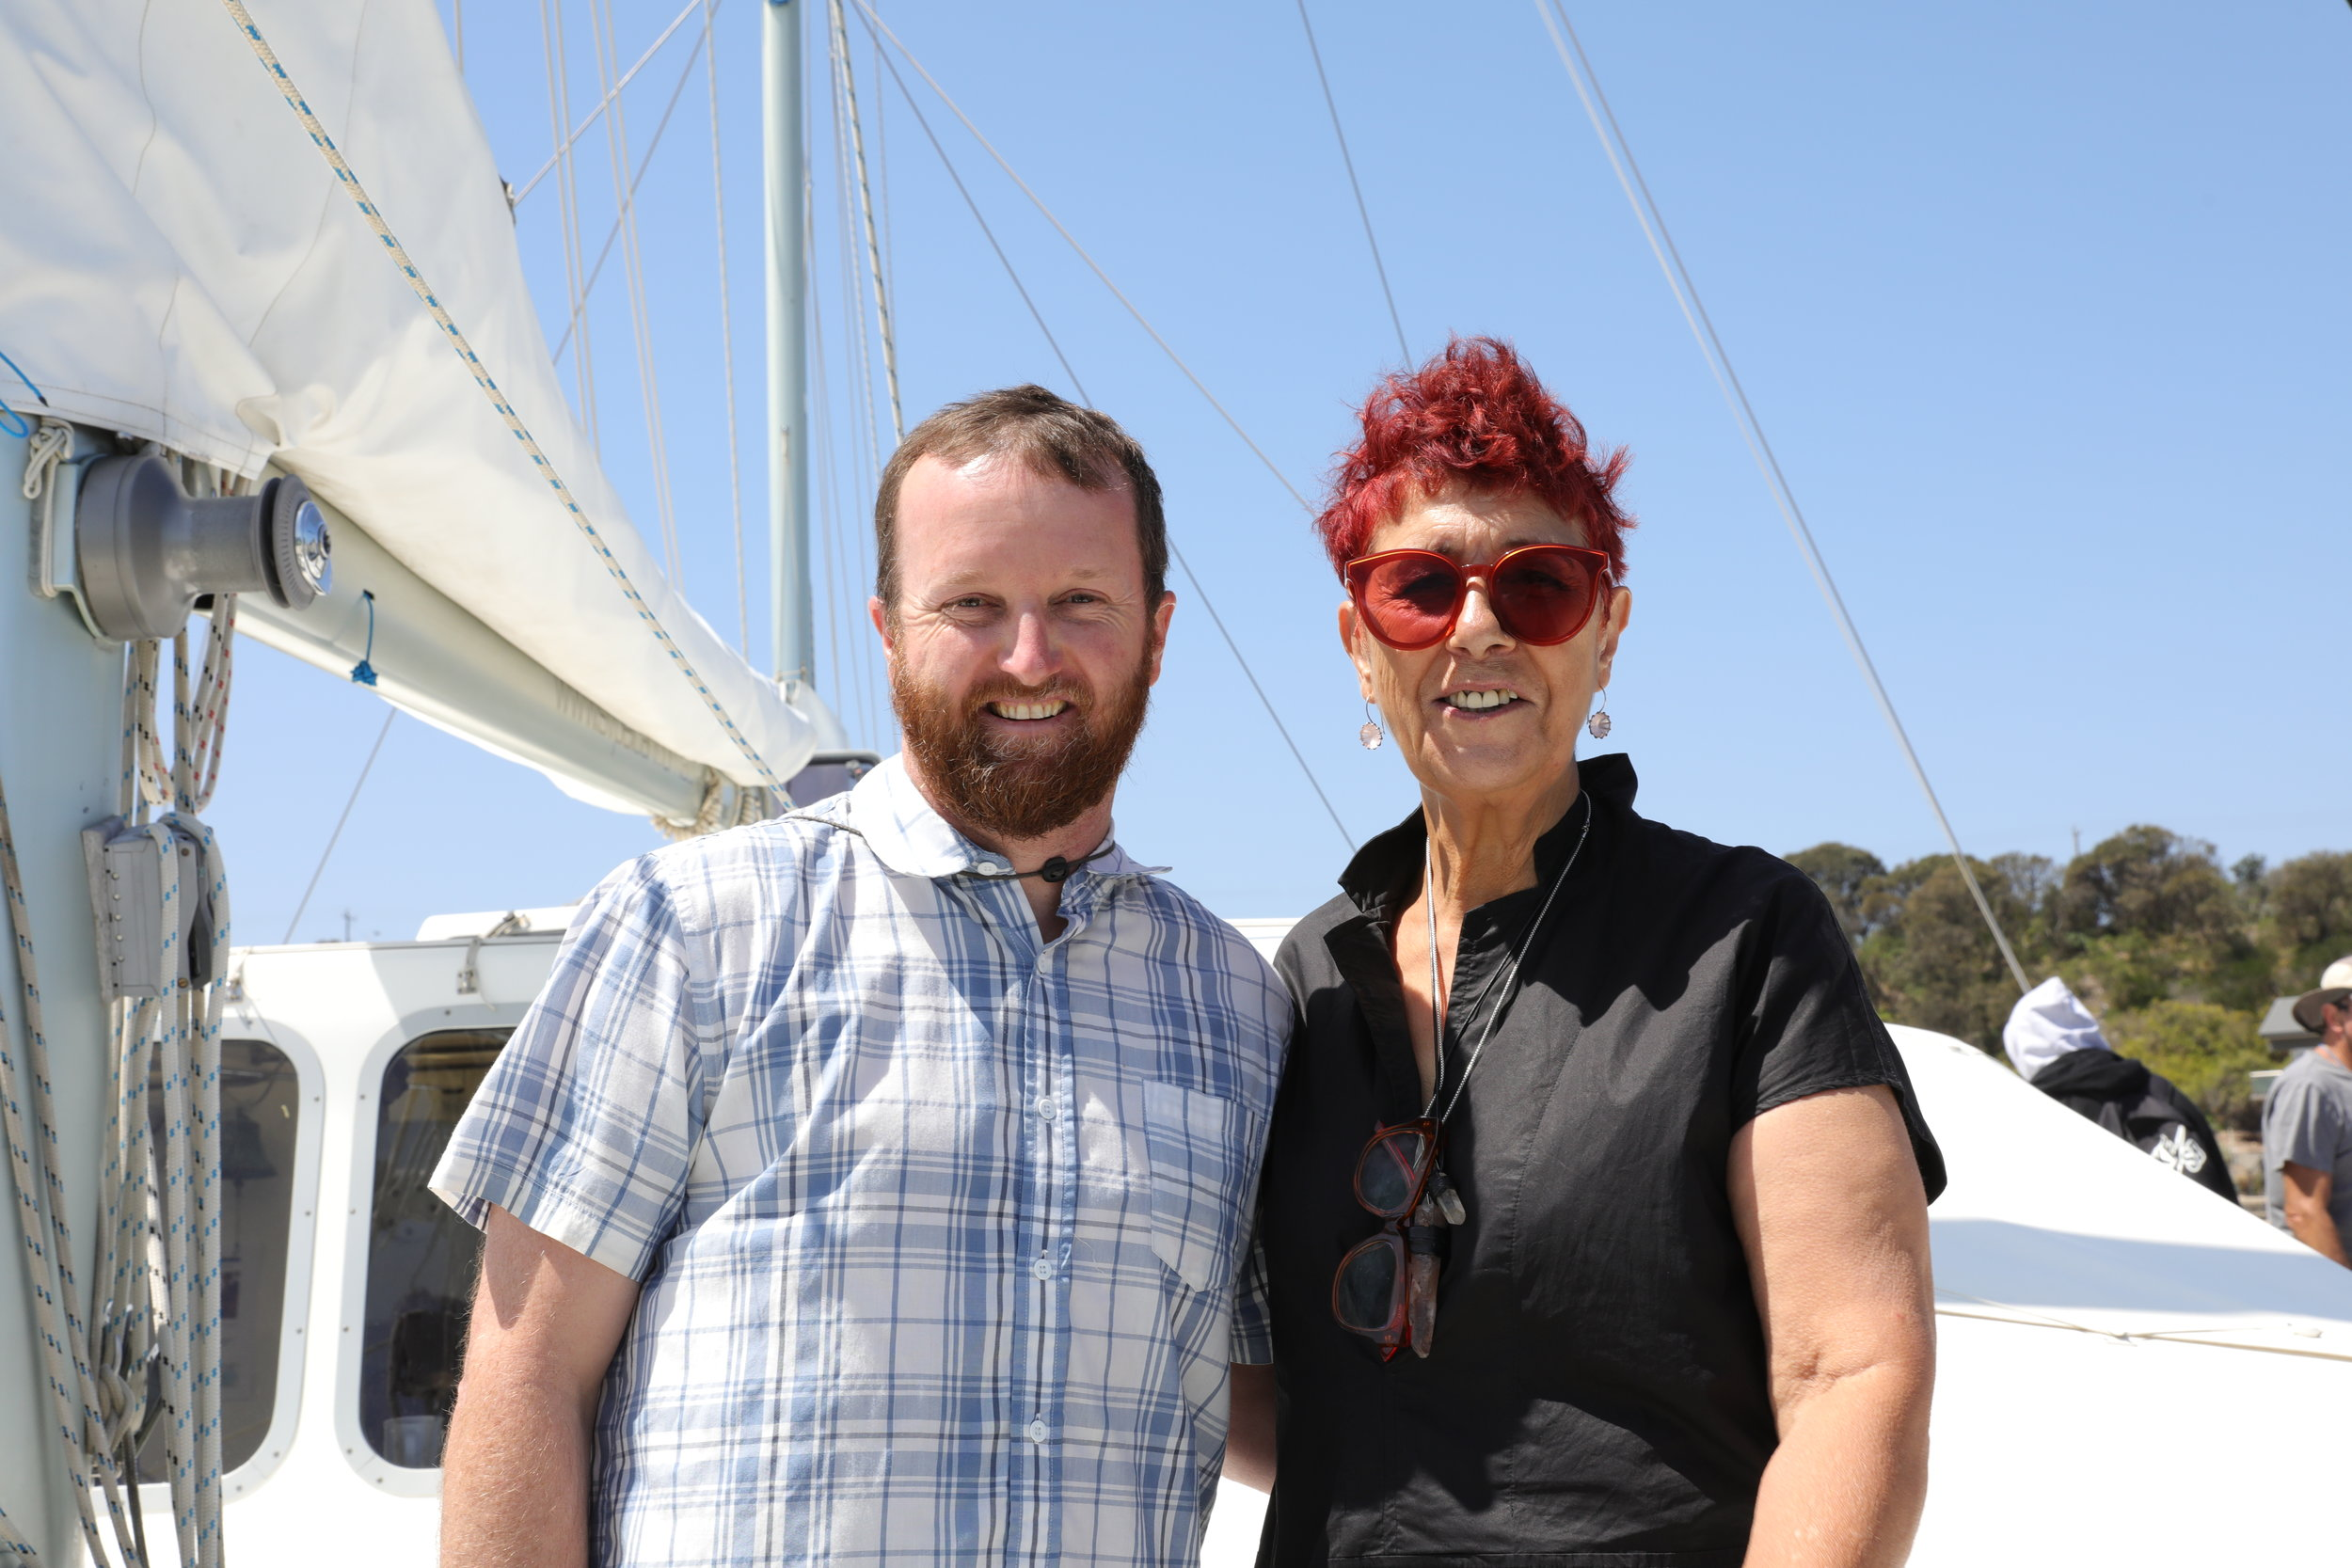 Simon Branigan from Nature Conservancy and Arweet Carolyn Briggs